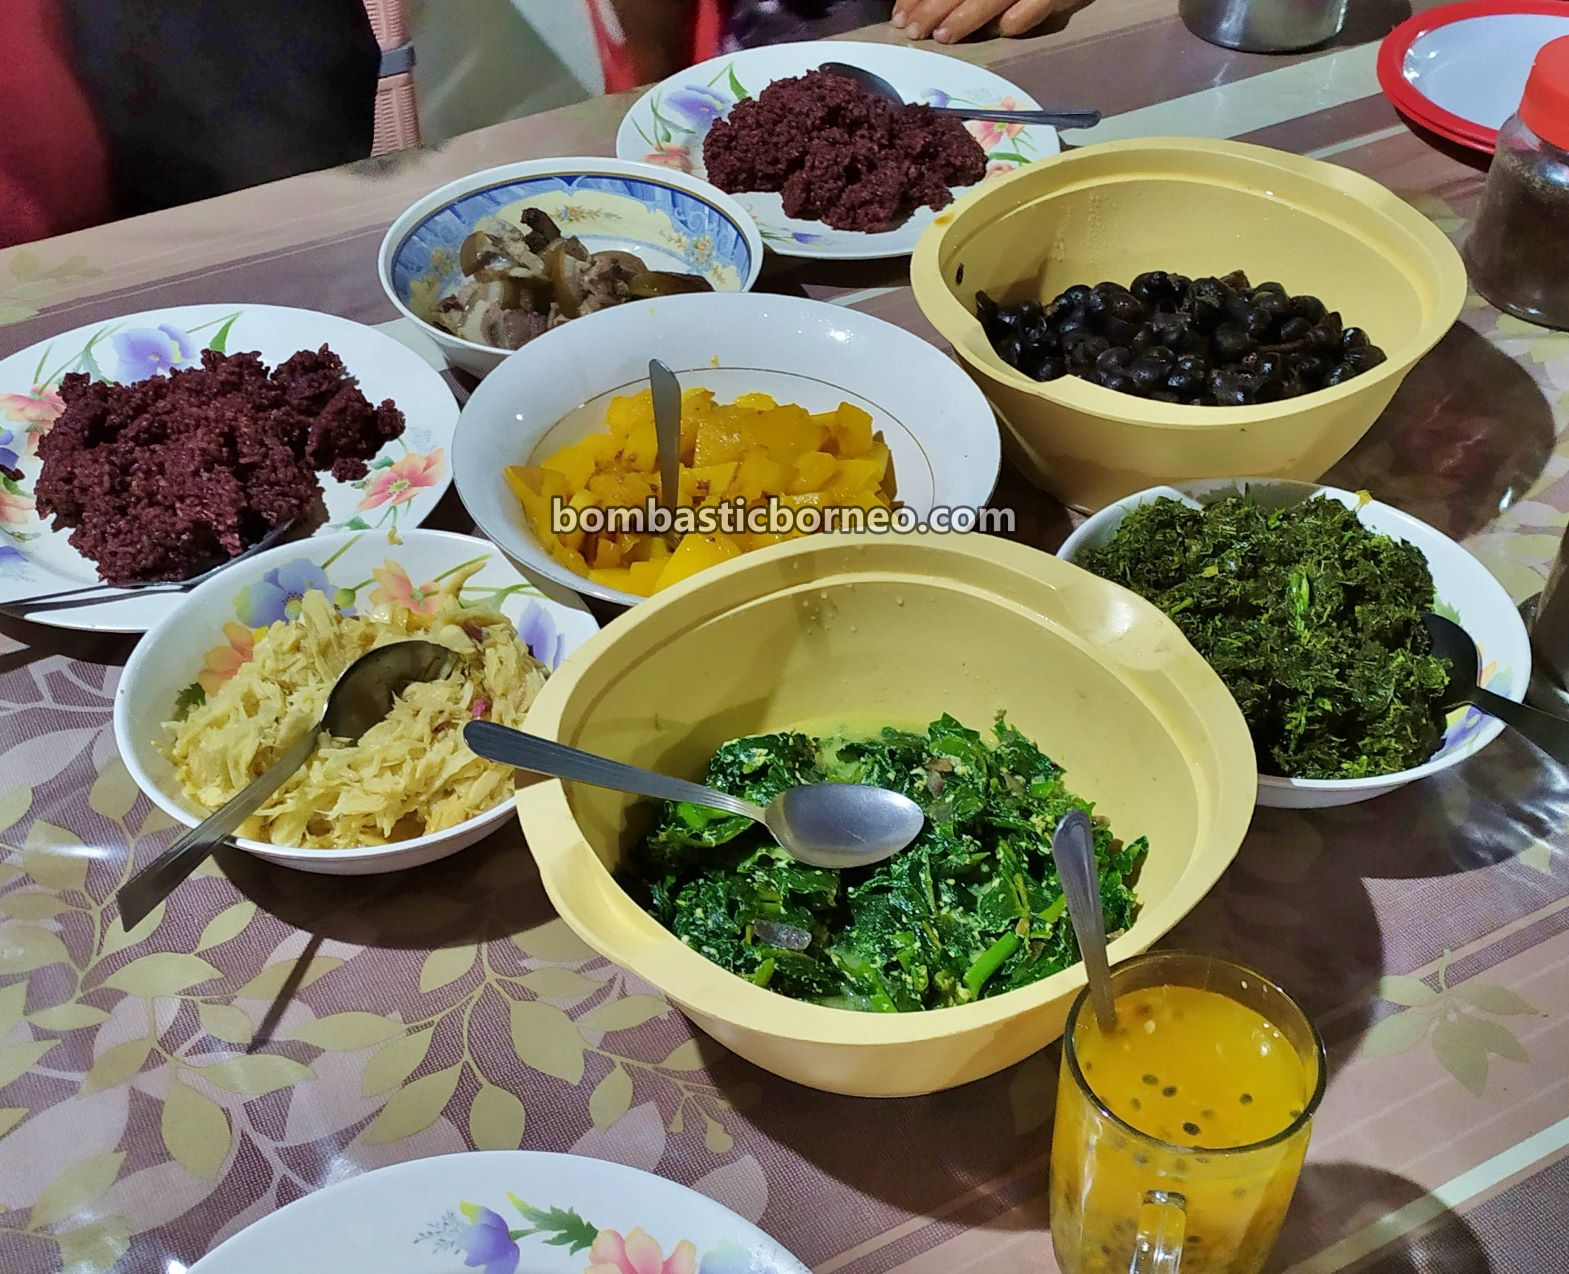 accommodation, backpackers, Malaysia, Interior village, Lun Bawang, orang asal, Orang Ulu, native, Tribe, Tourism, Travel Guide, Trans Border, 马来西亚巴卡拉兰, 砂拉越原住民, 弄巴湾族民宿